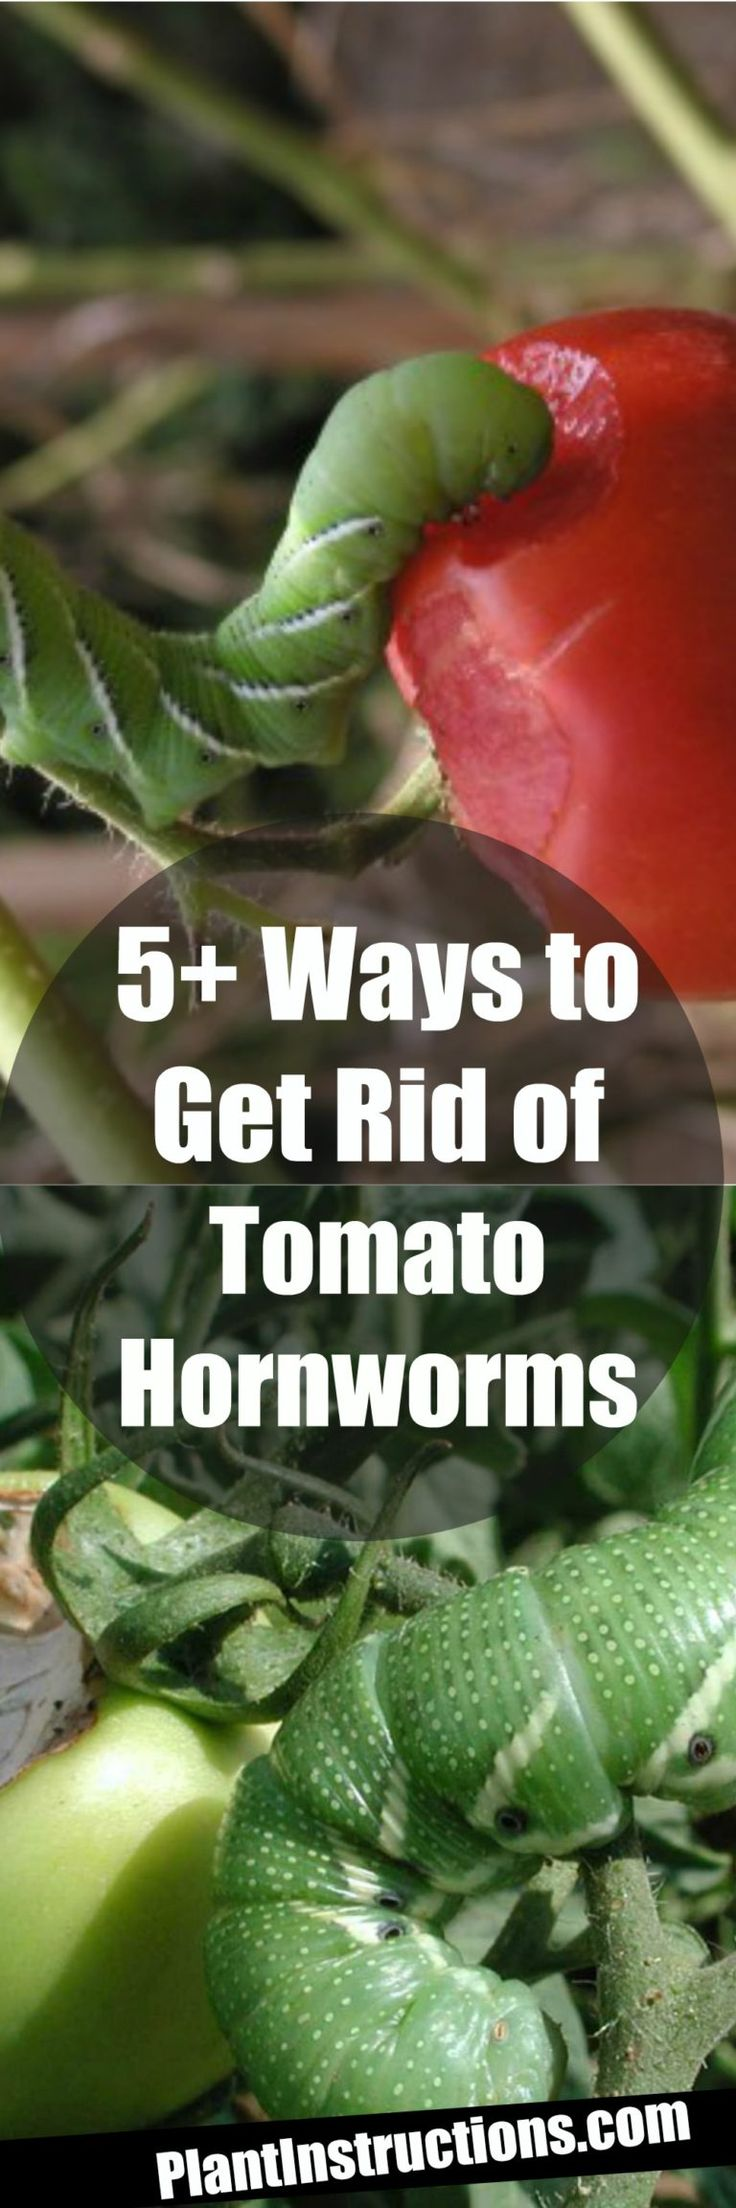 5 ways to get rid of tomato hornworms growing tomatoes